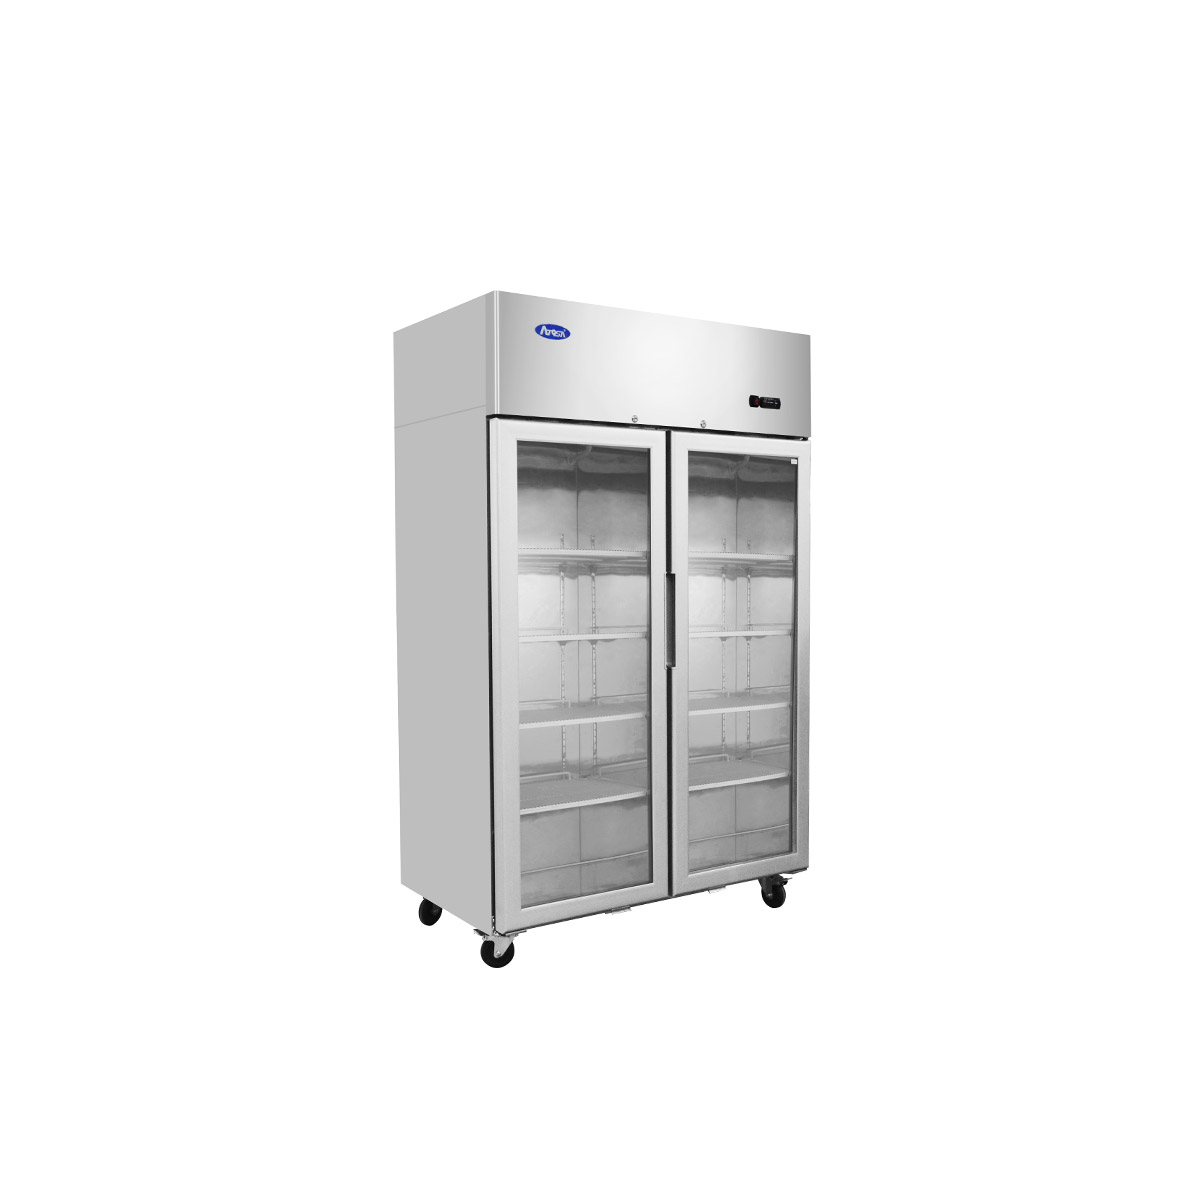 Atosa YCF9408GR Slimline Double Glass Door Upright Freezer 900ltrs